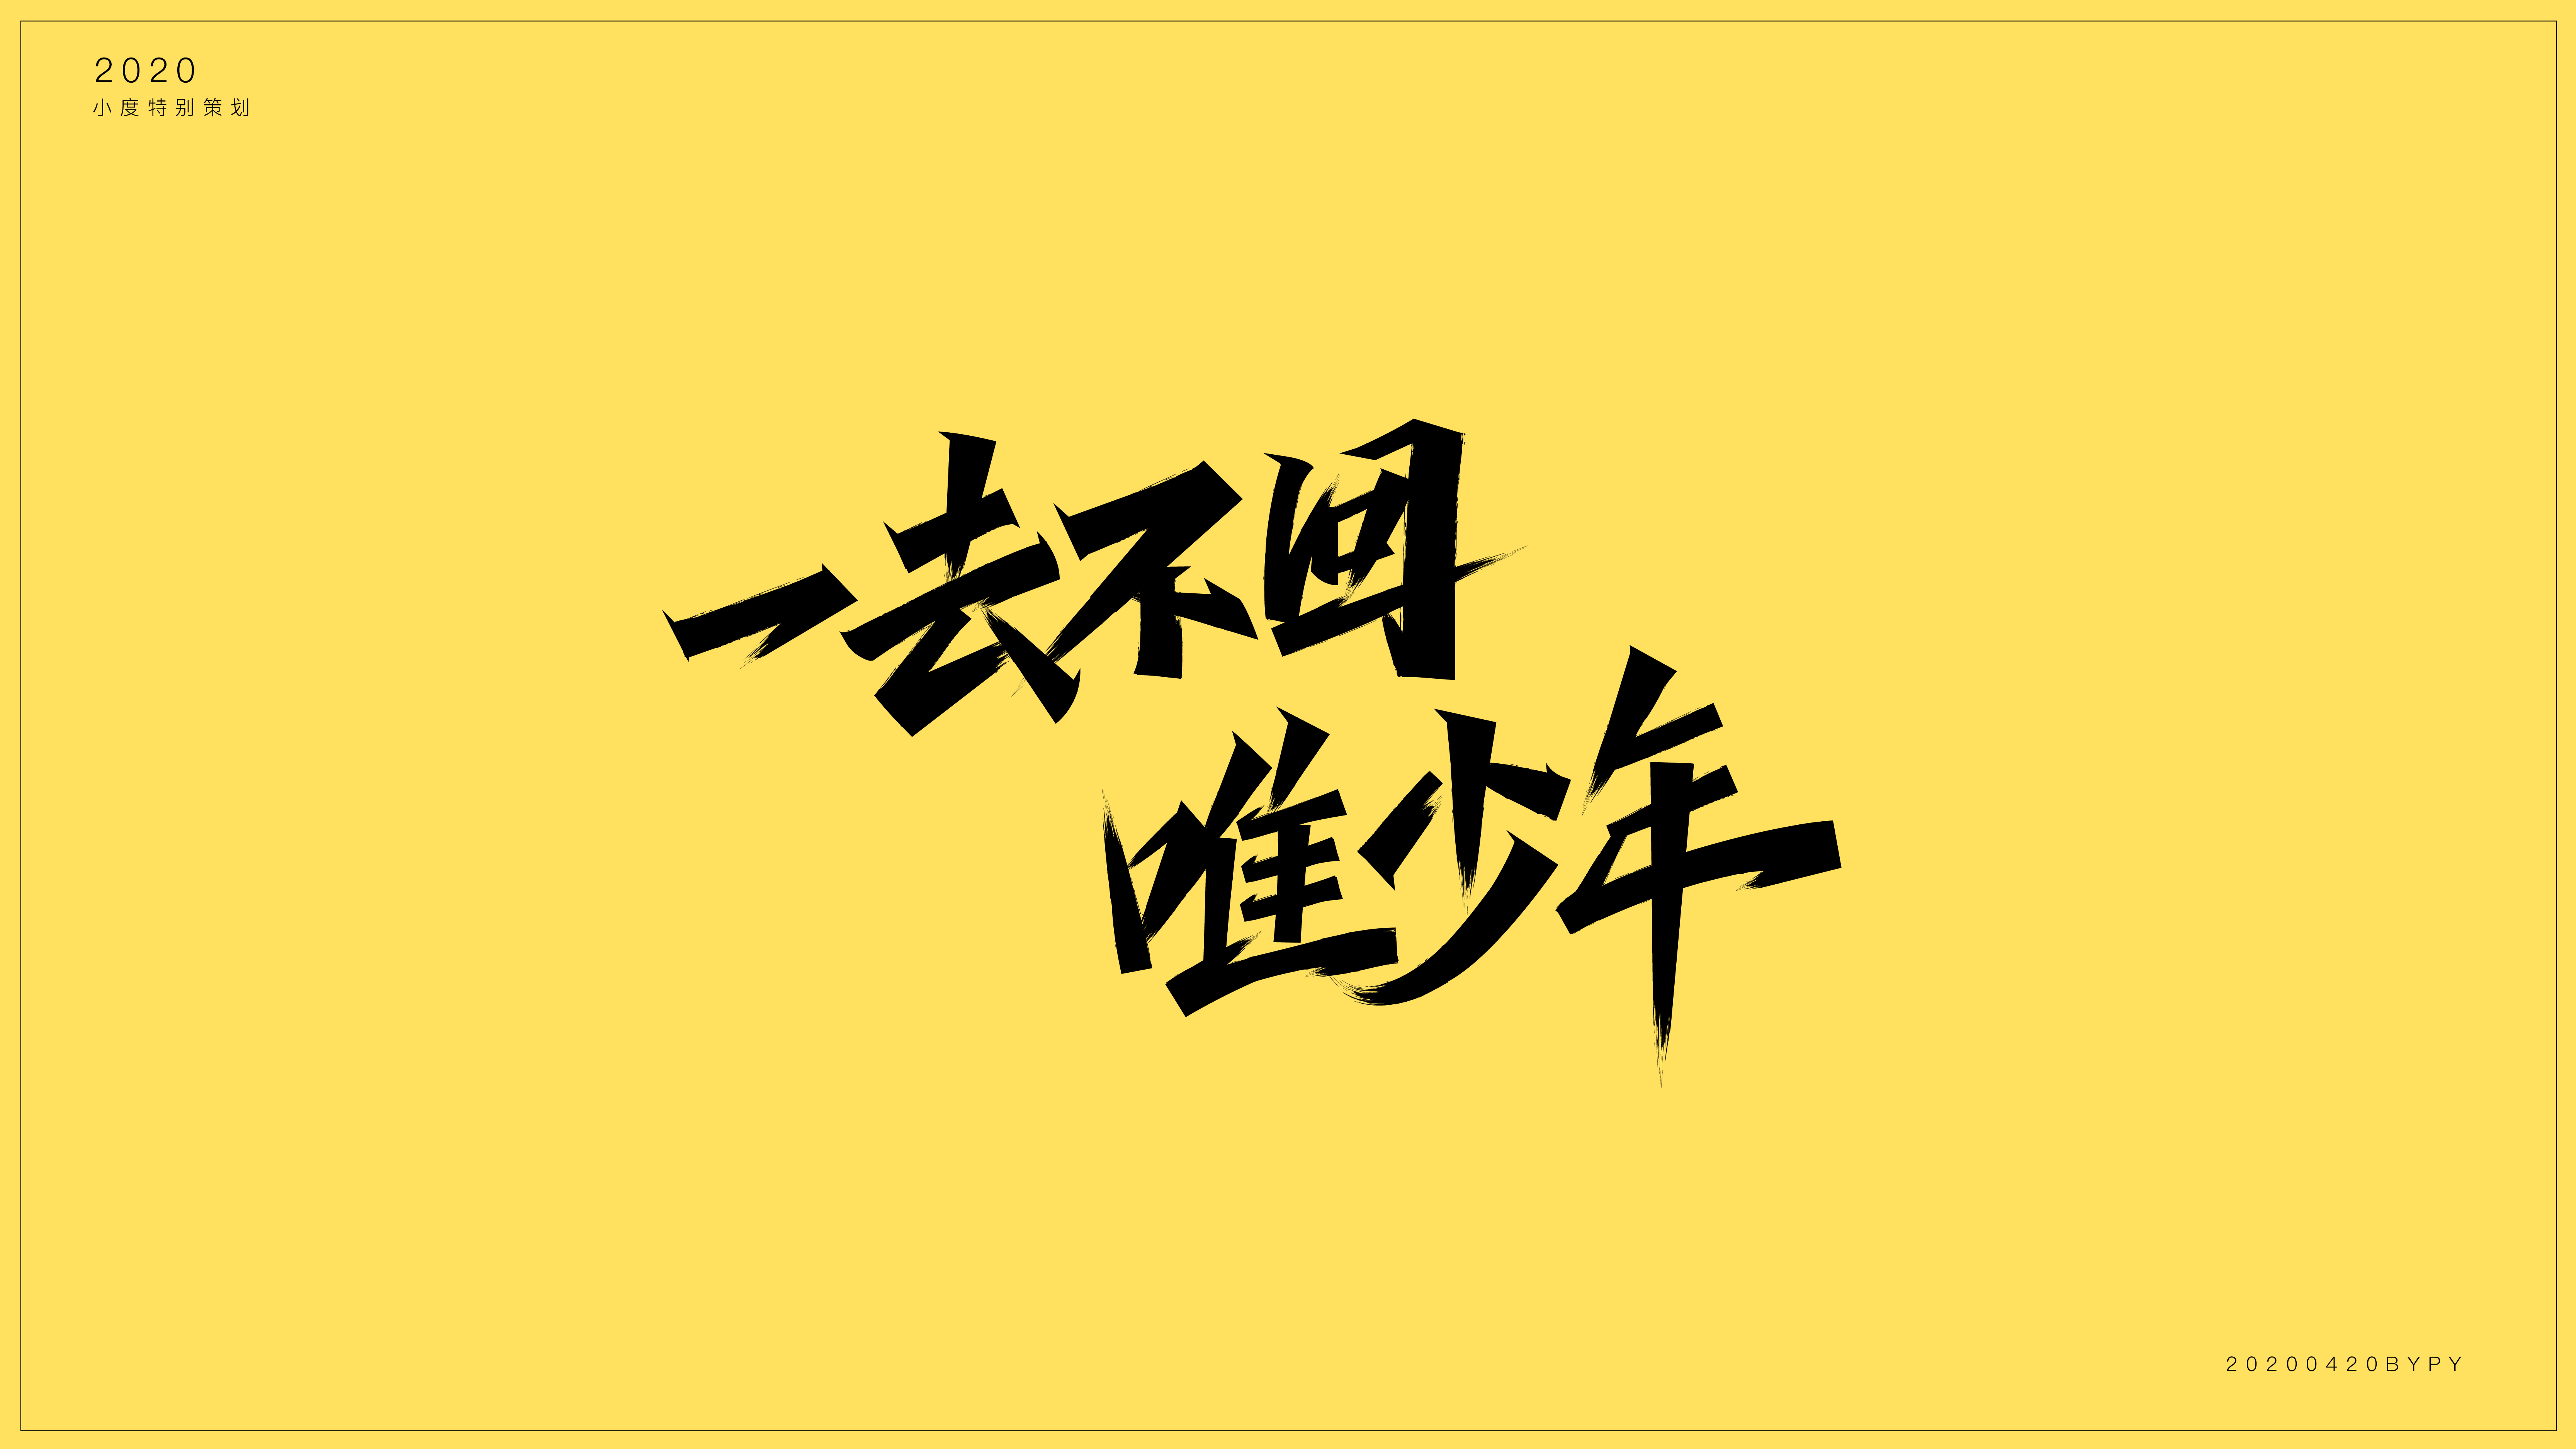 10P The latest issue of logo design in Chinese font